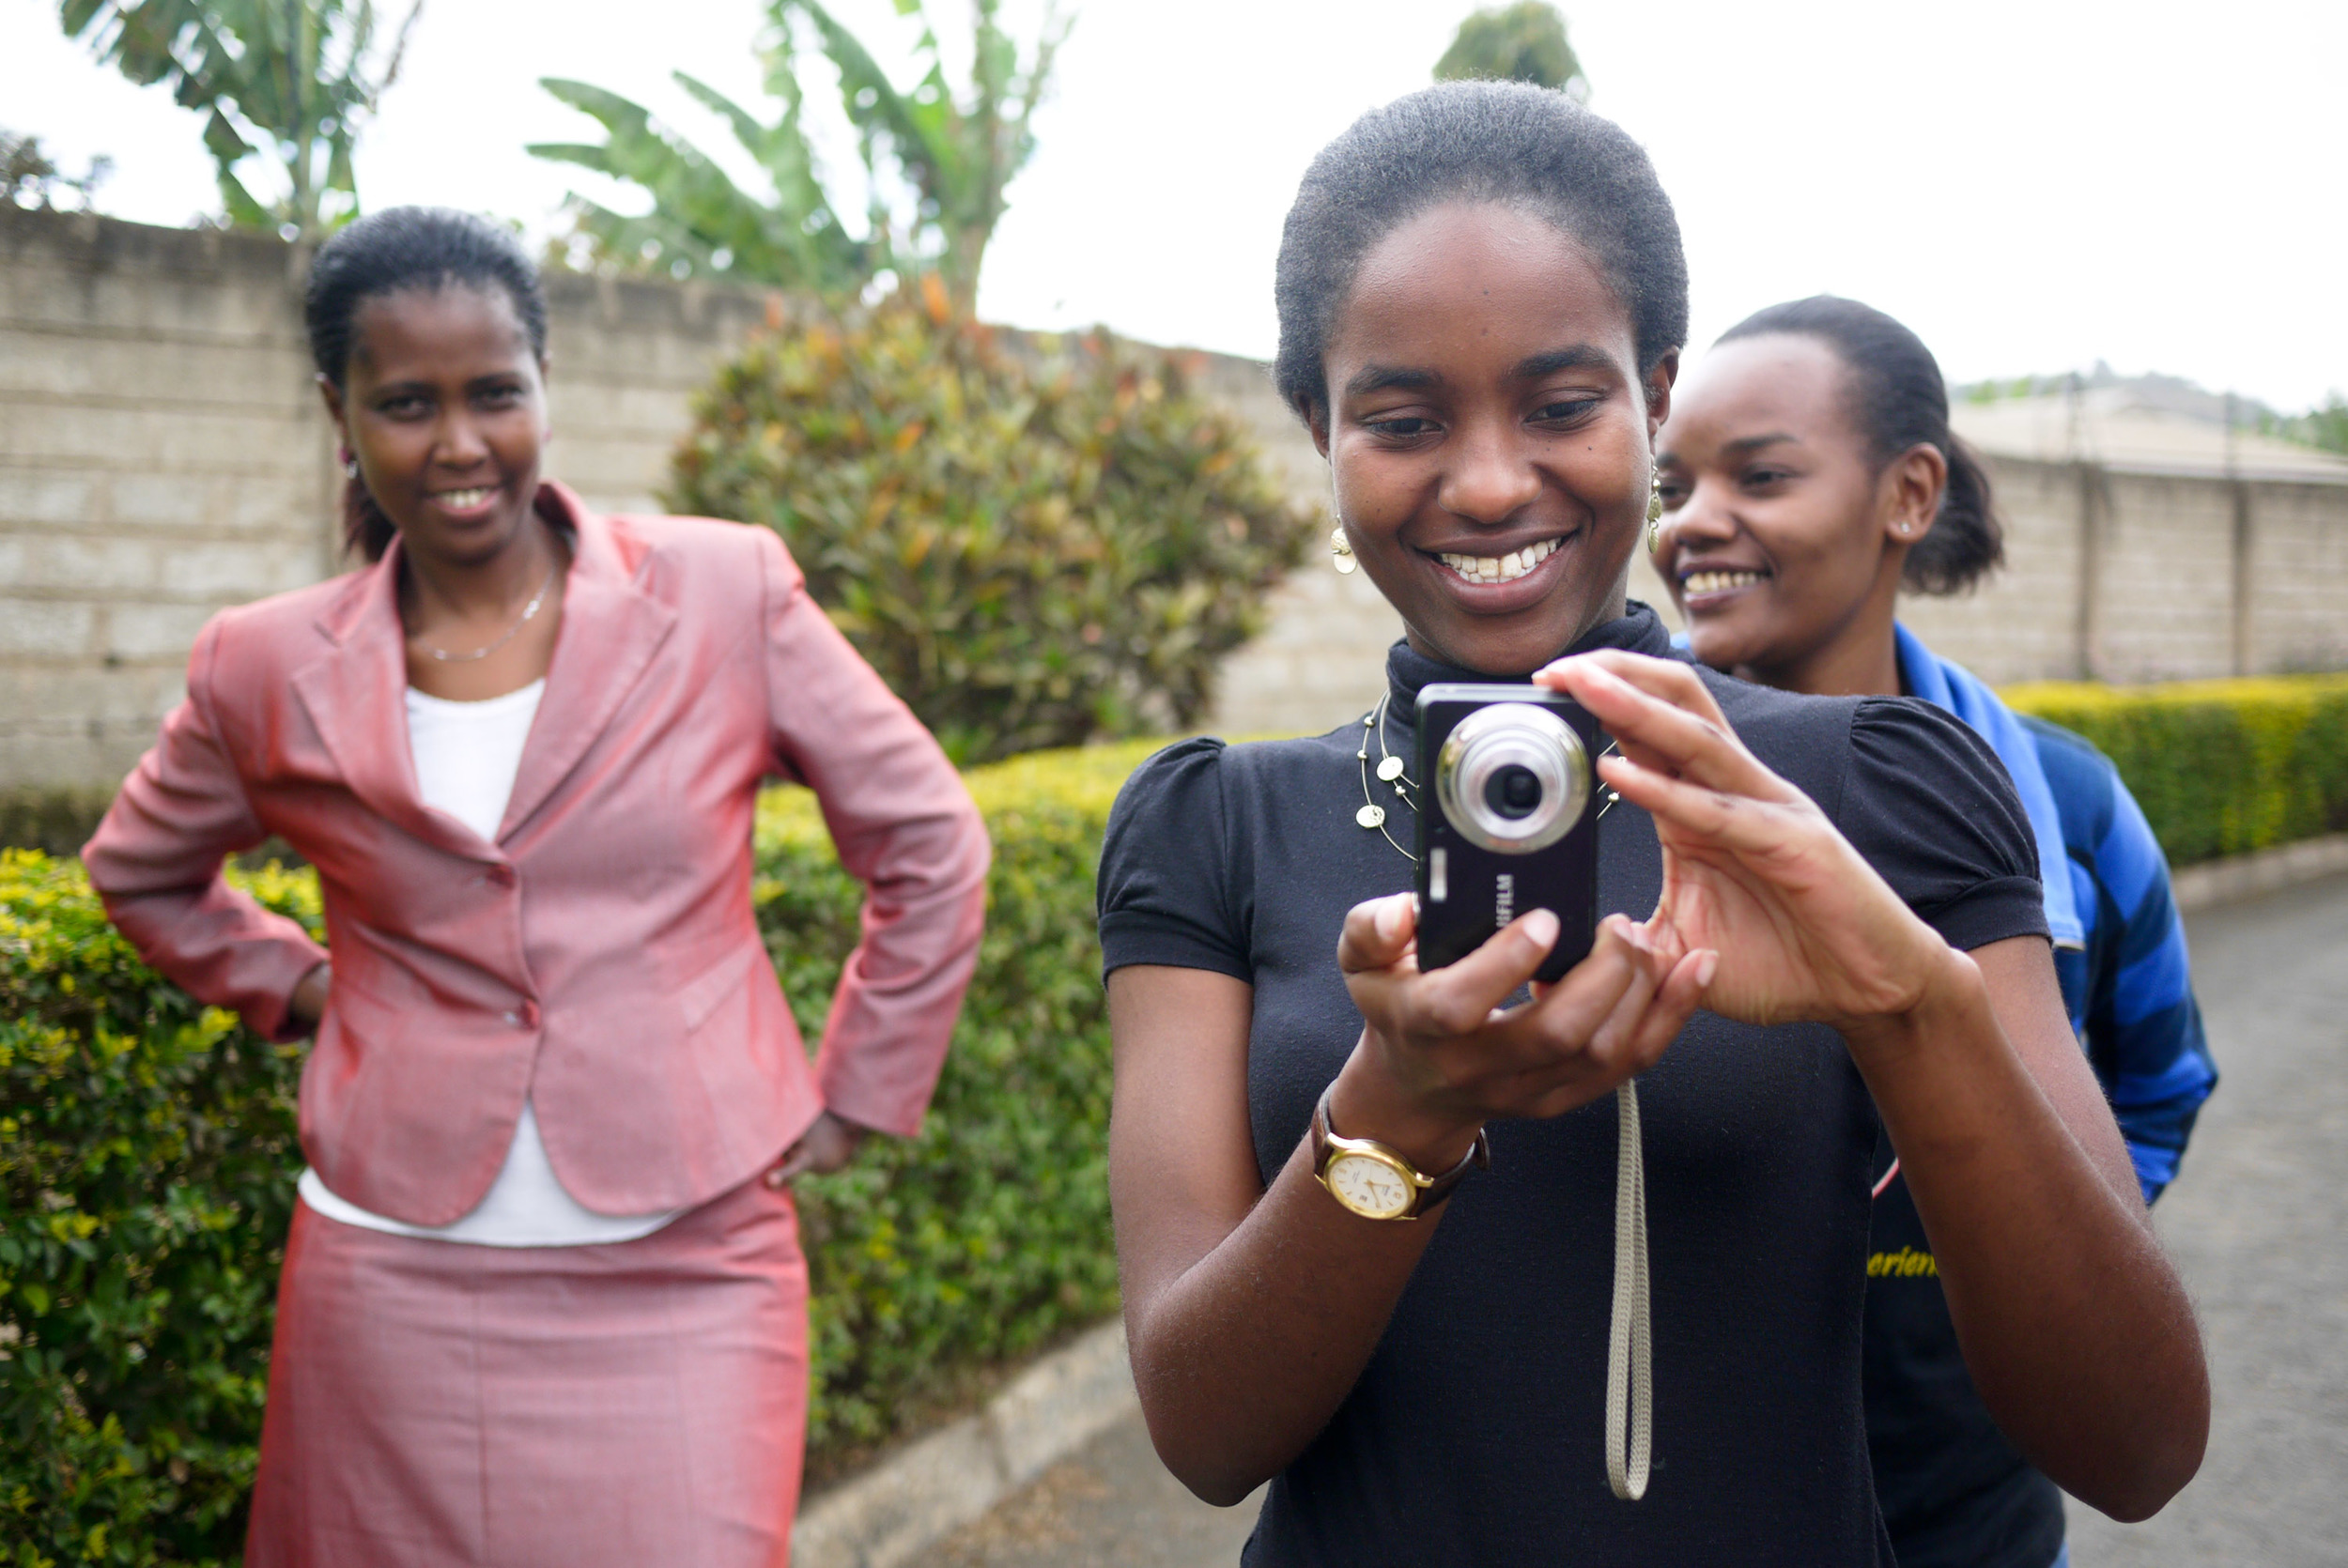 Anande, center, practices her new photography skills during a workshop.